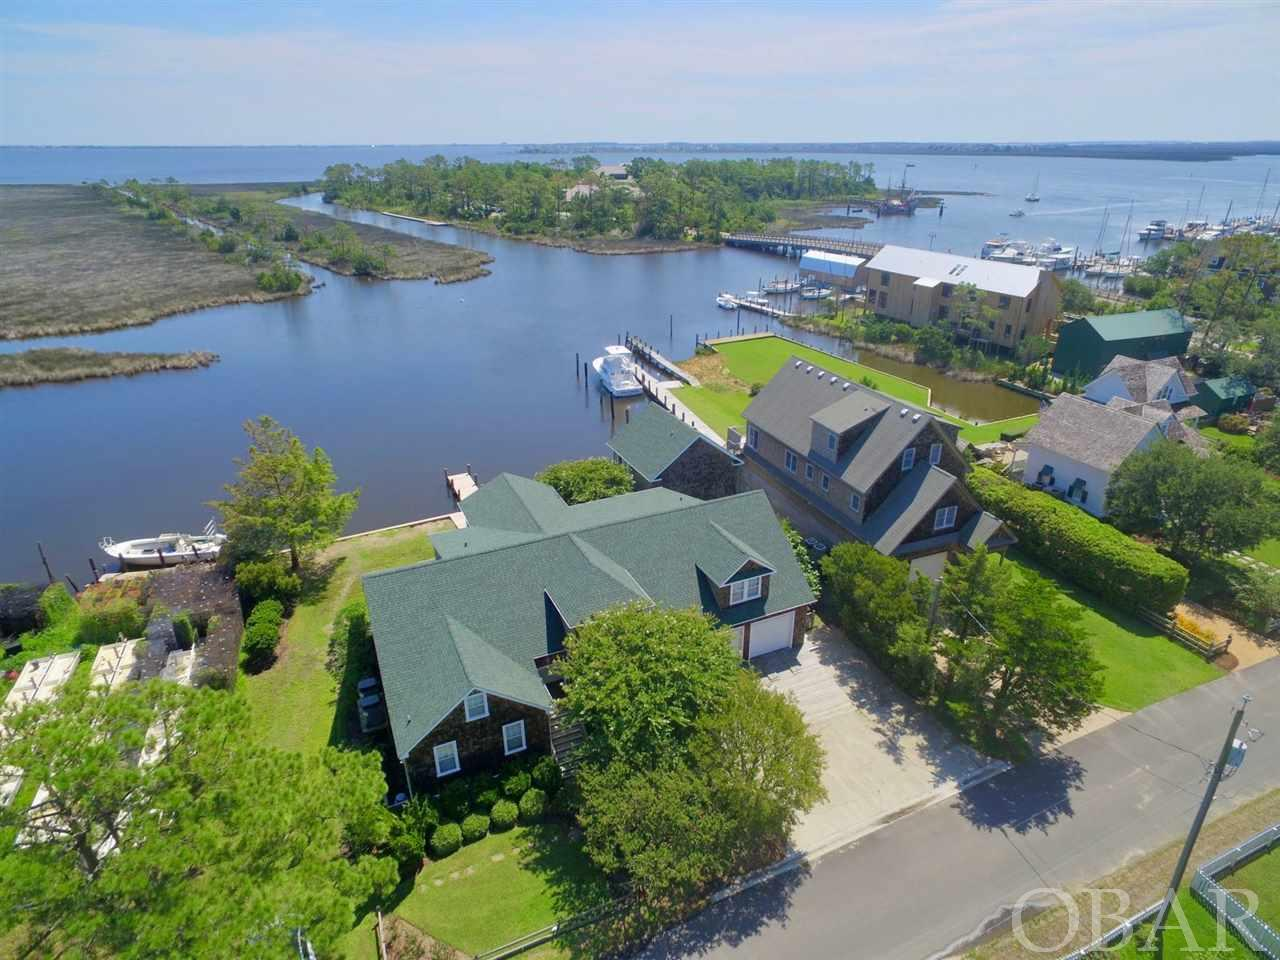 607 Croatan Avenue, Manteo, NC 27954, 6 Bedrooms Bedrooms, ,5 BathroomsBathrooms,Residential,For sale,Croatan Avenue,101622